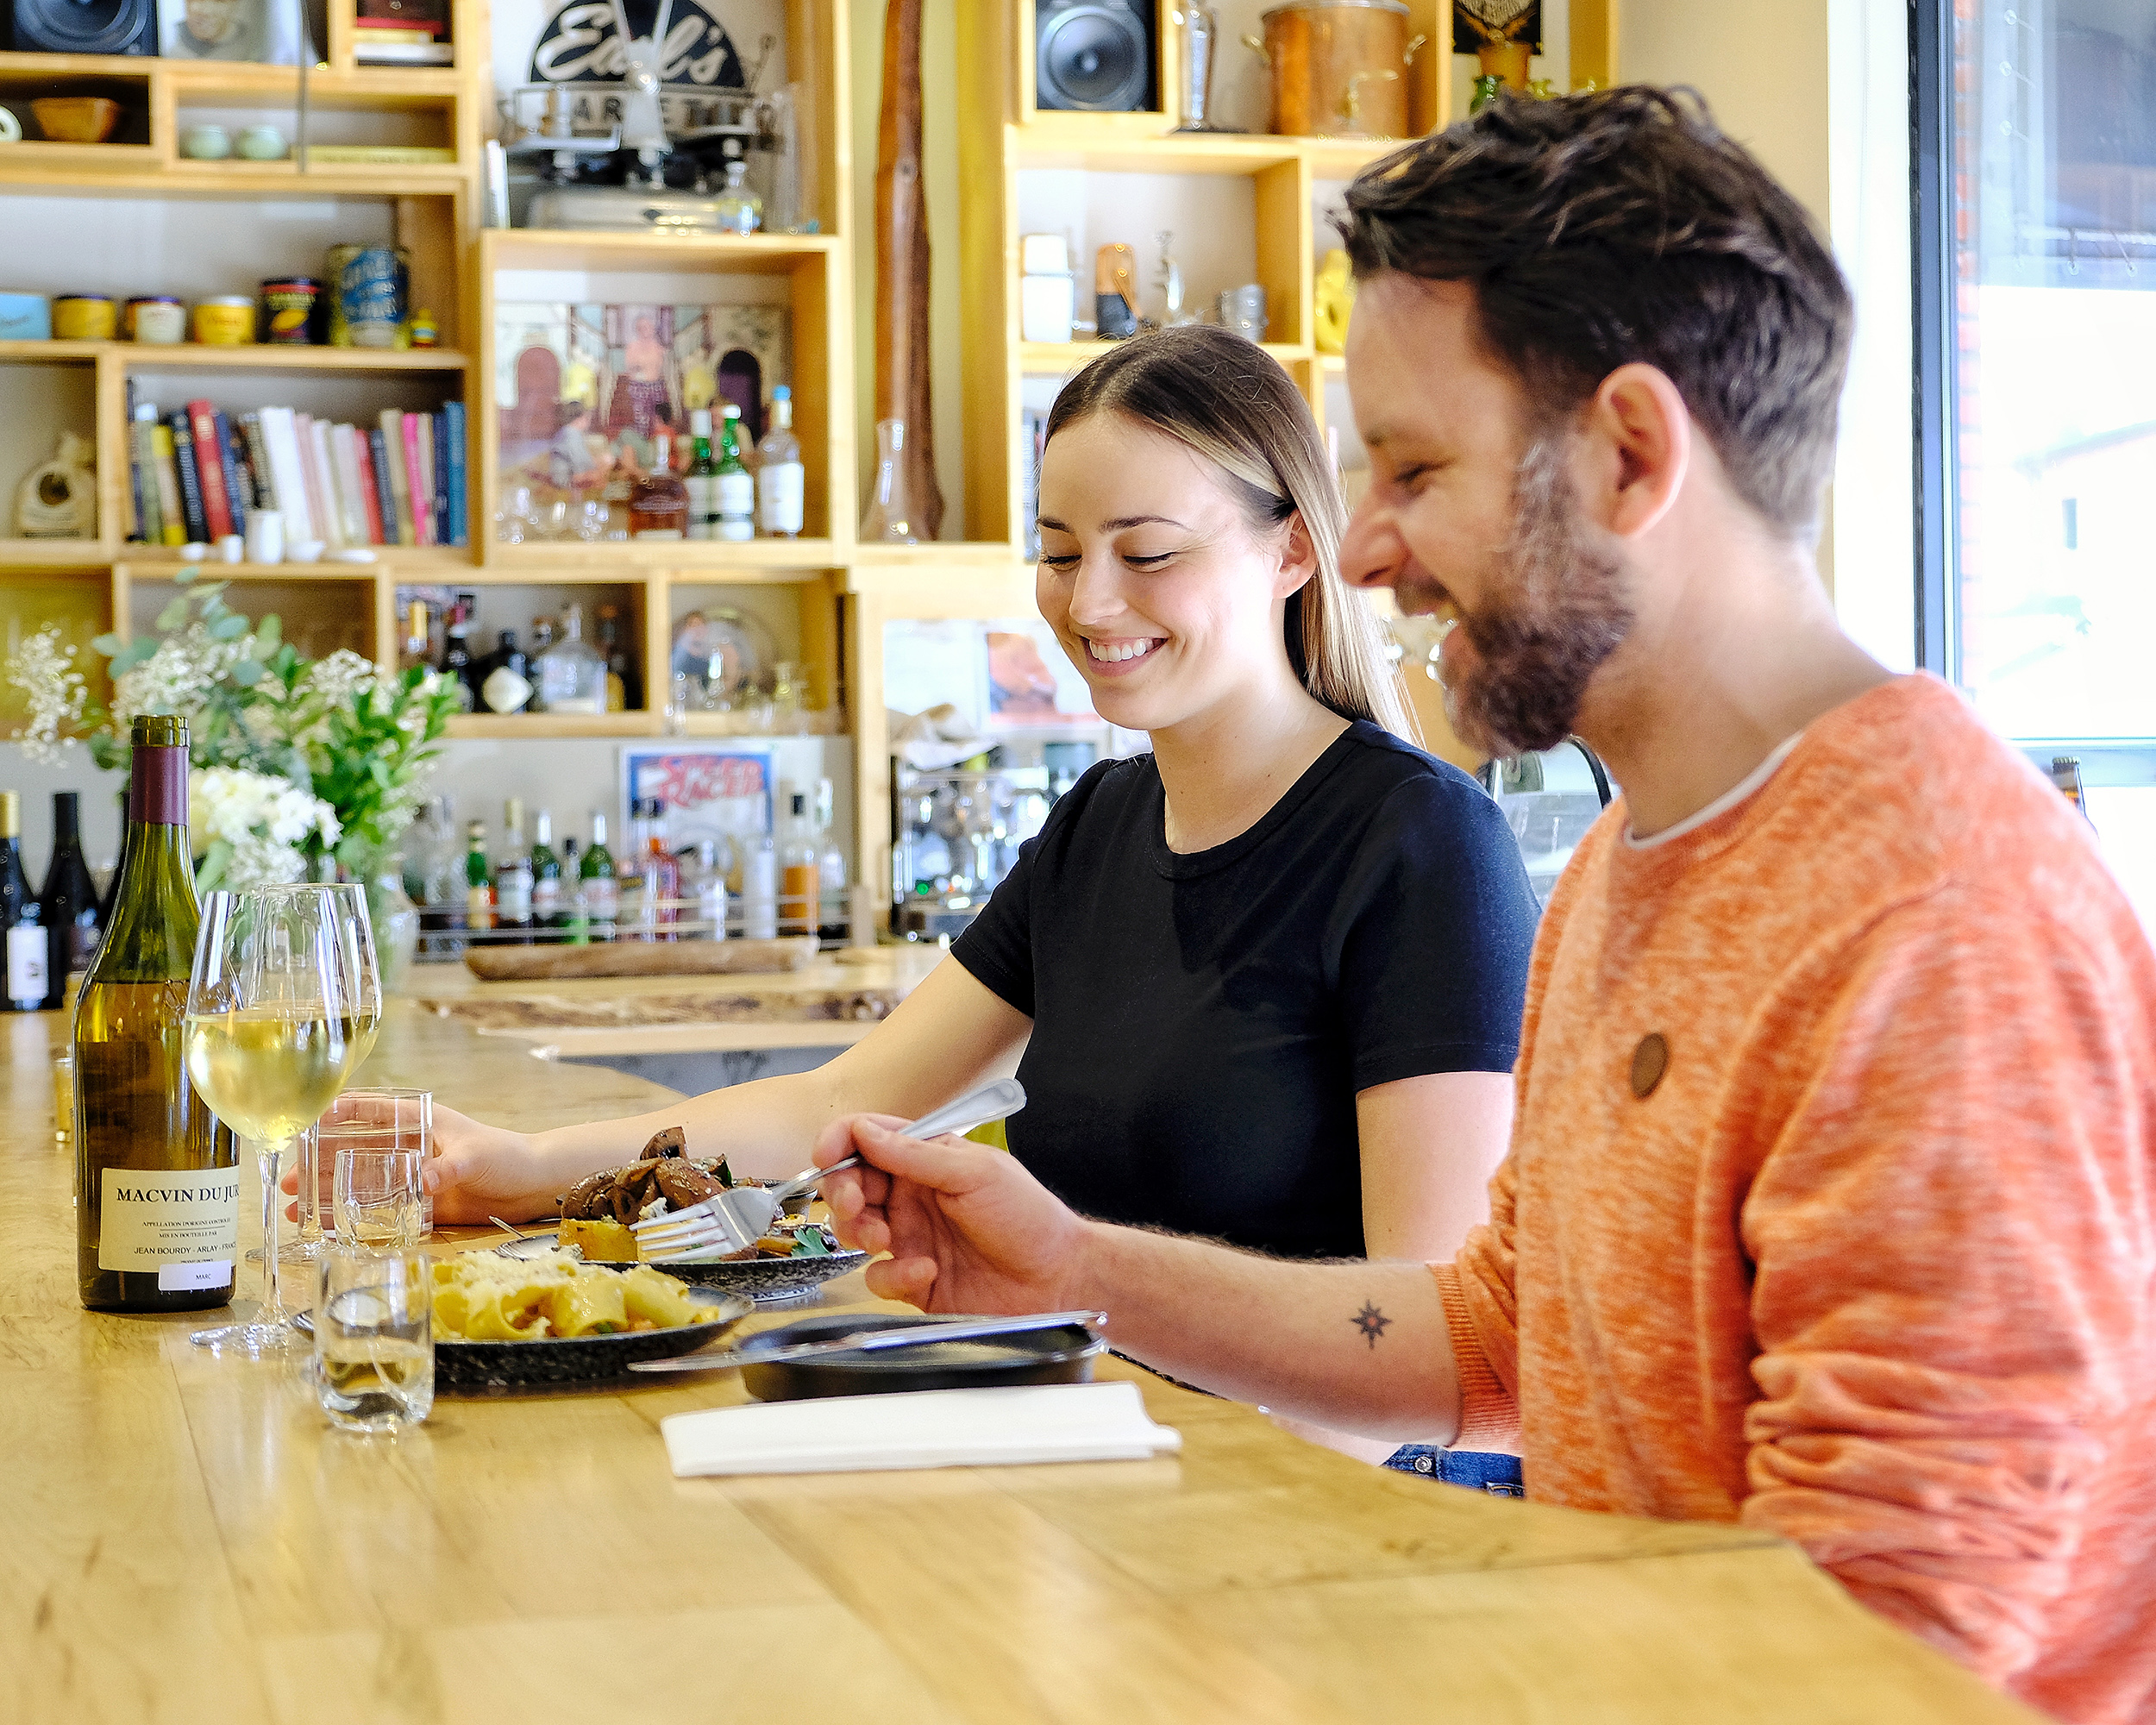 Indoor Dining back open in the Glebe as Ottawa enters Step 3